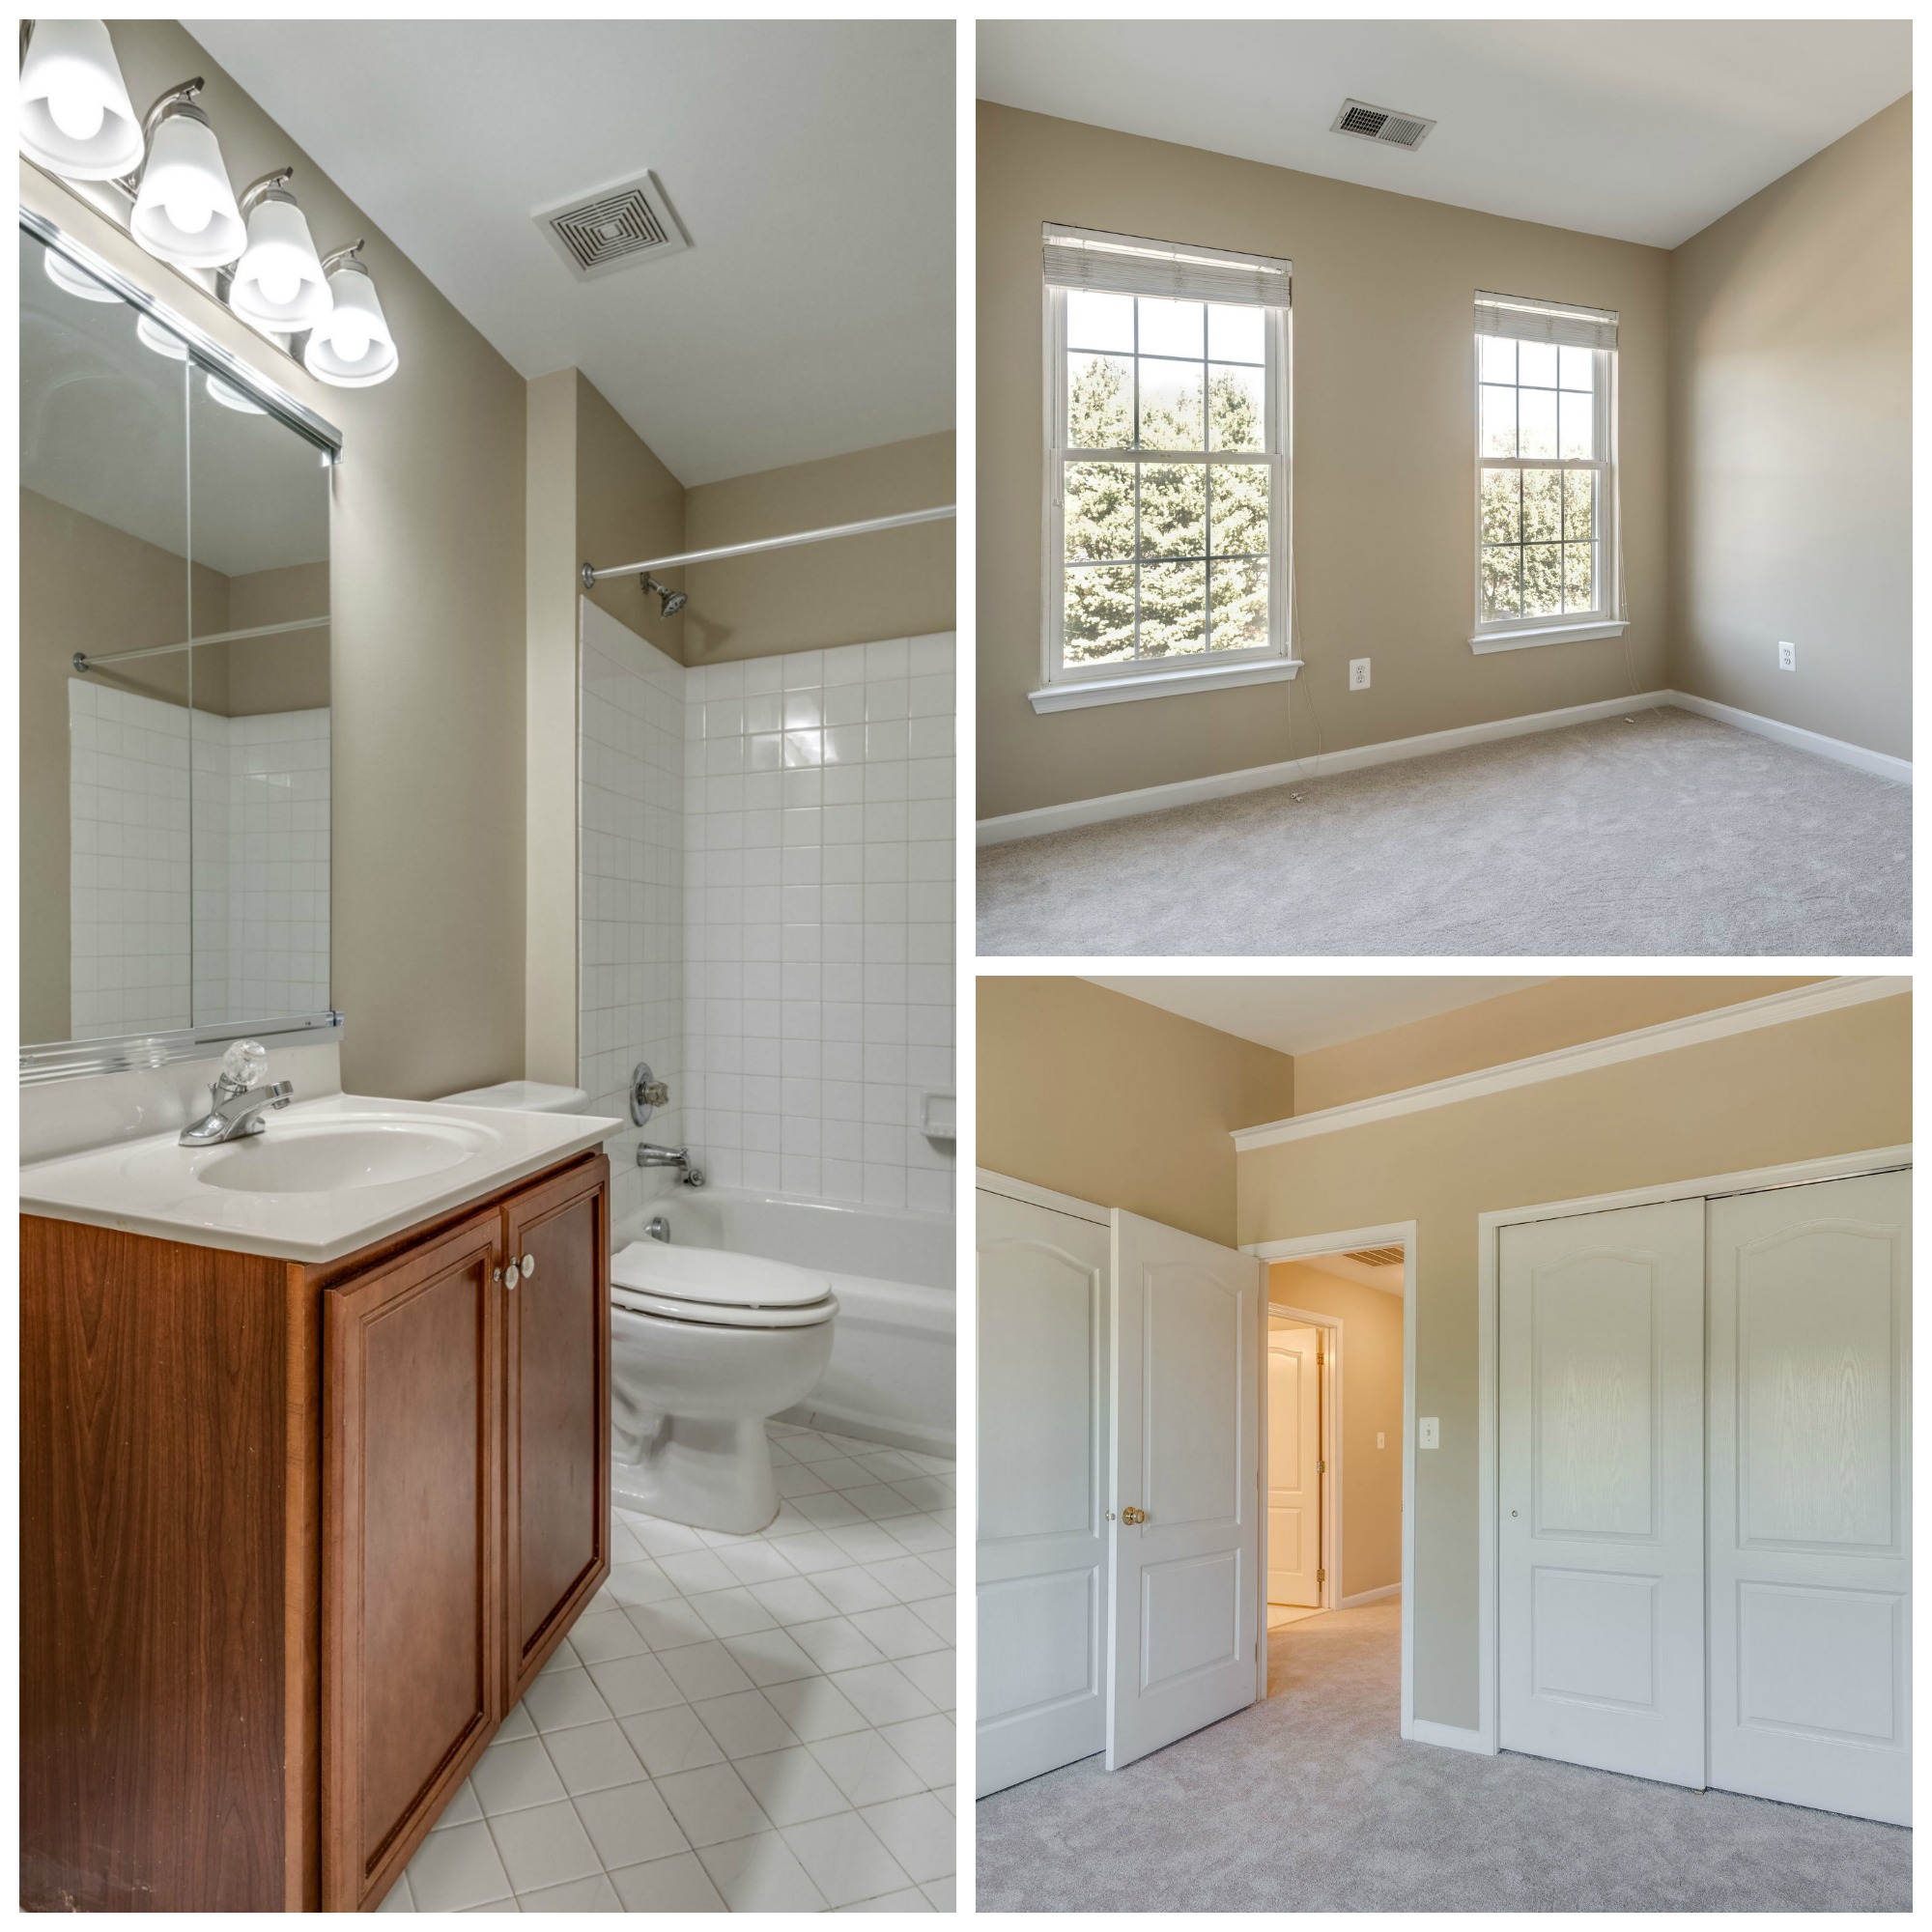 43627 Pickett Corner Ter- Loudoun Valley Estates- Additional Bedrooms and Bathroom